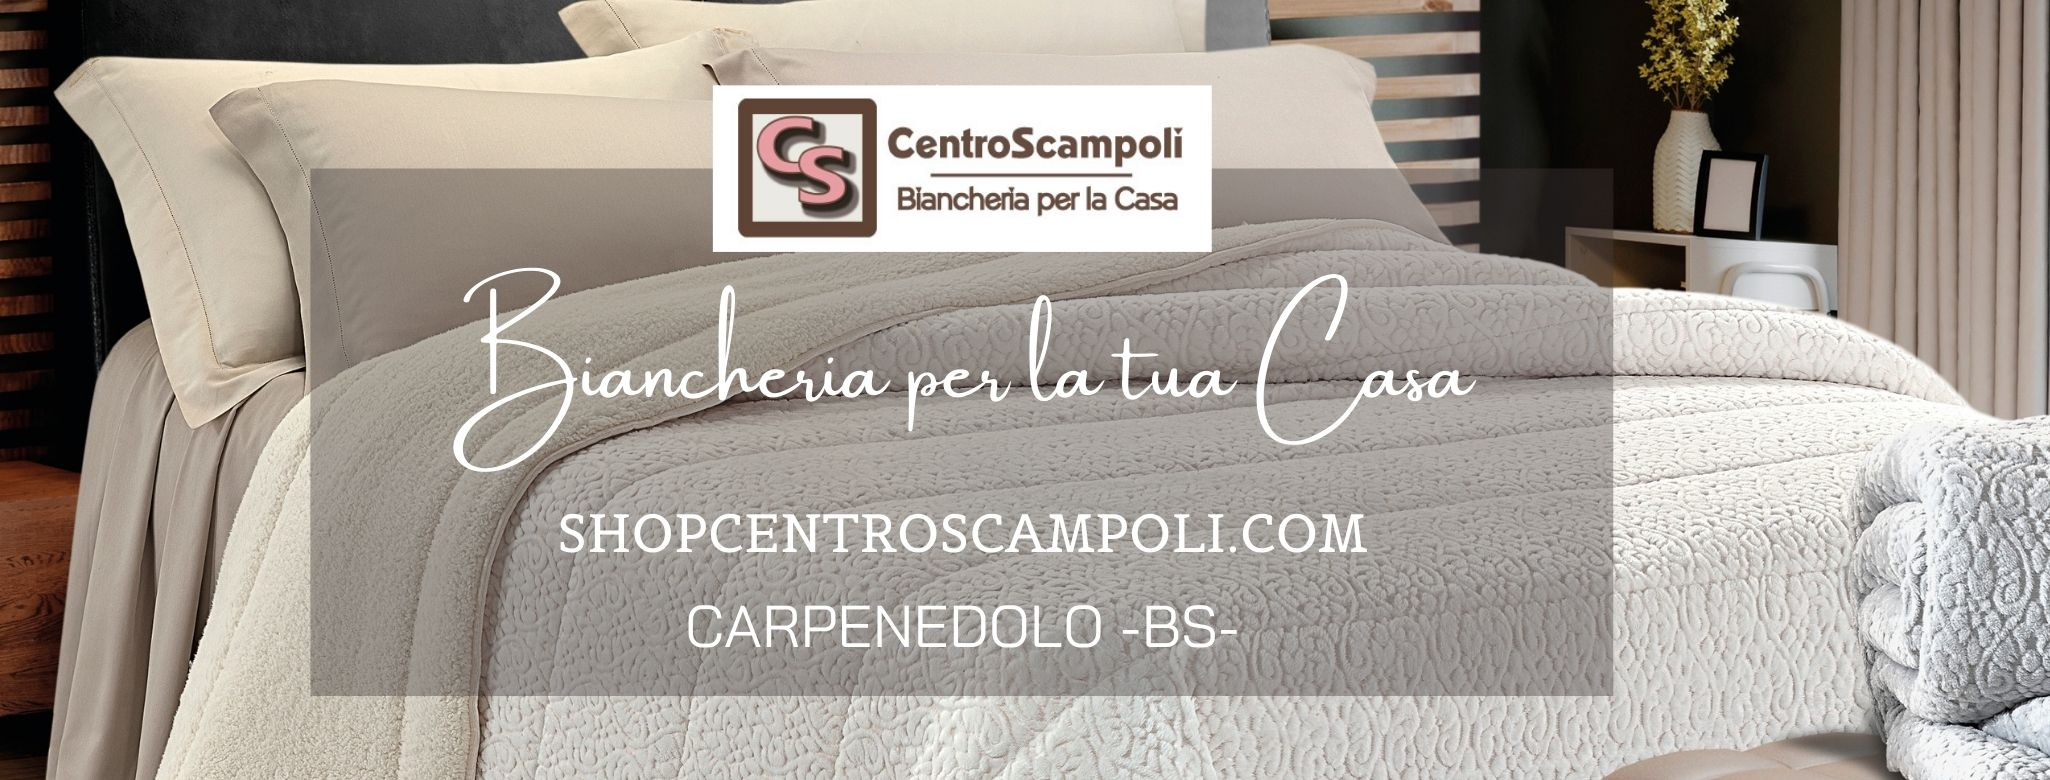 Add A Touch Of New Style To Bedding Ideas With New Items From CentroScampoli